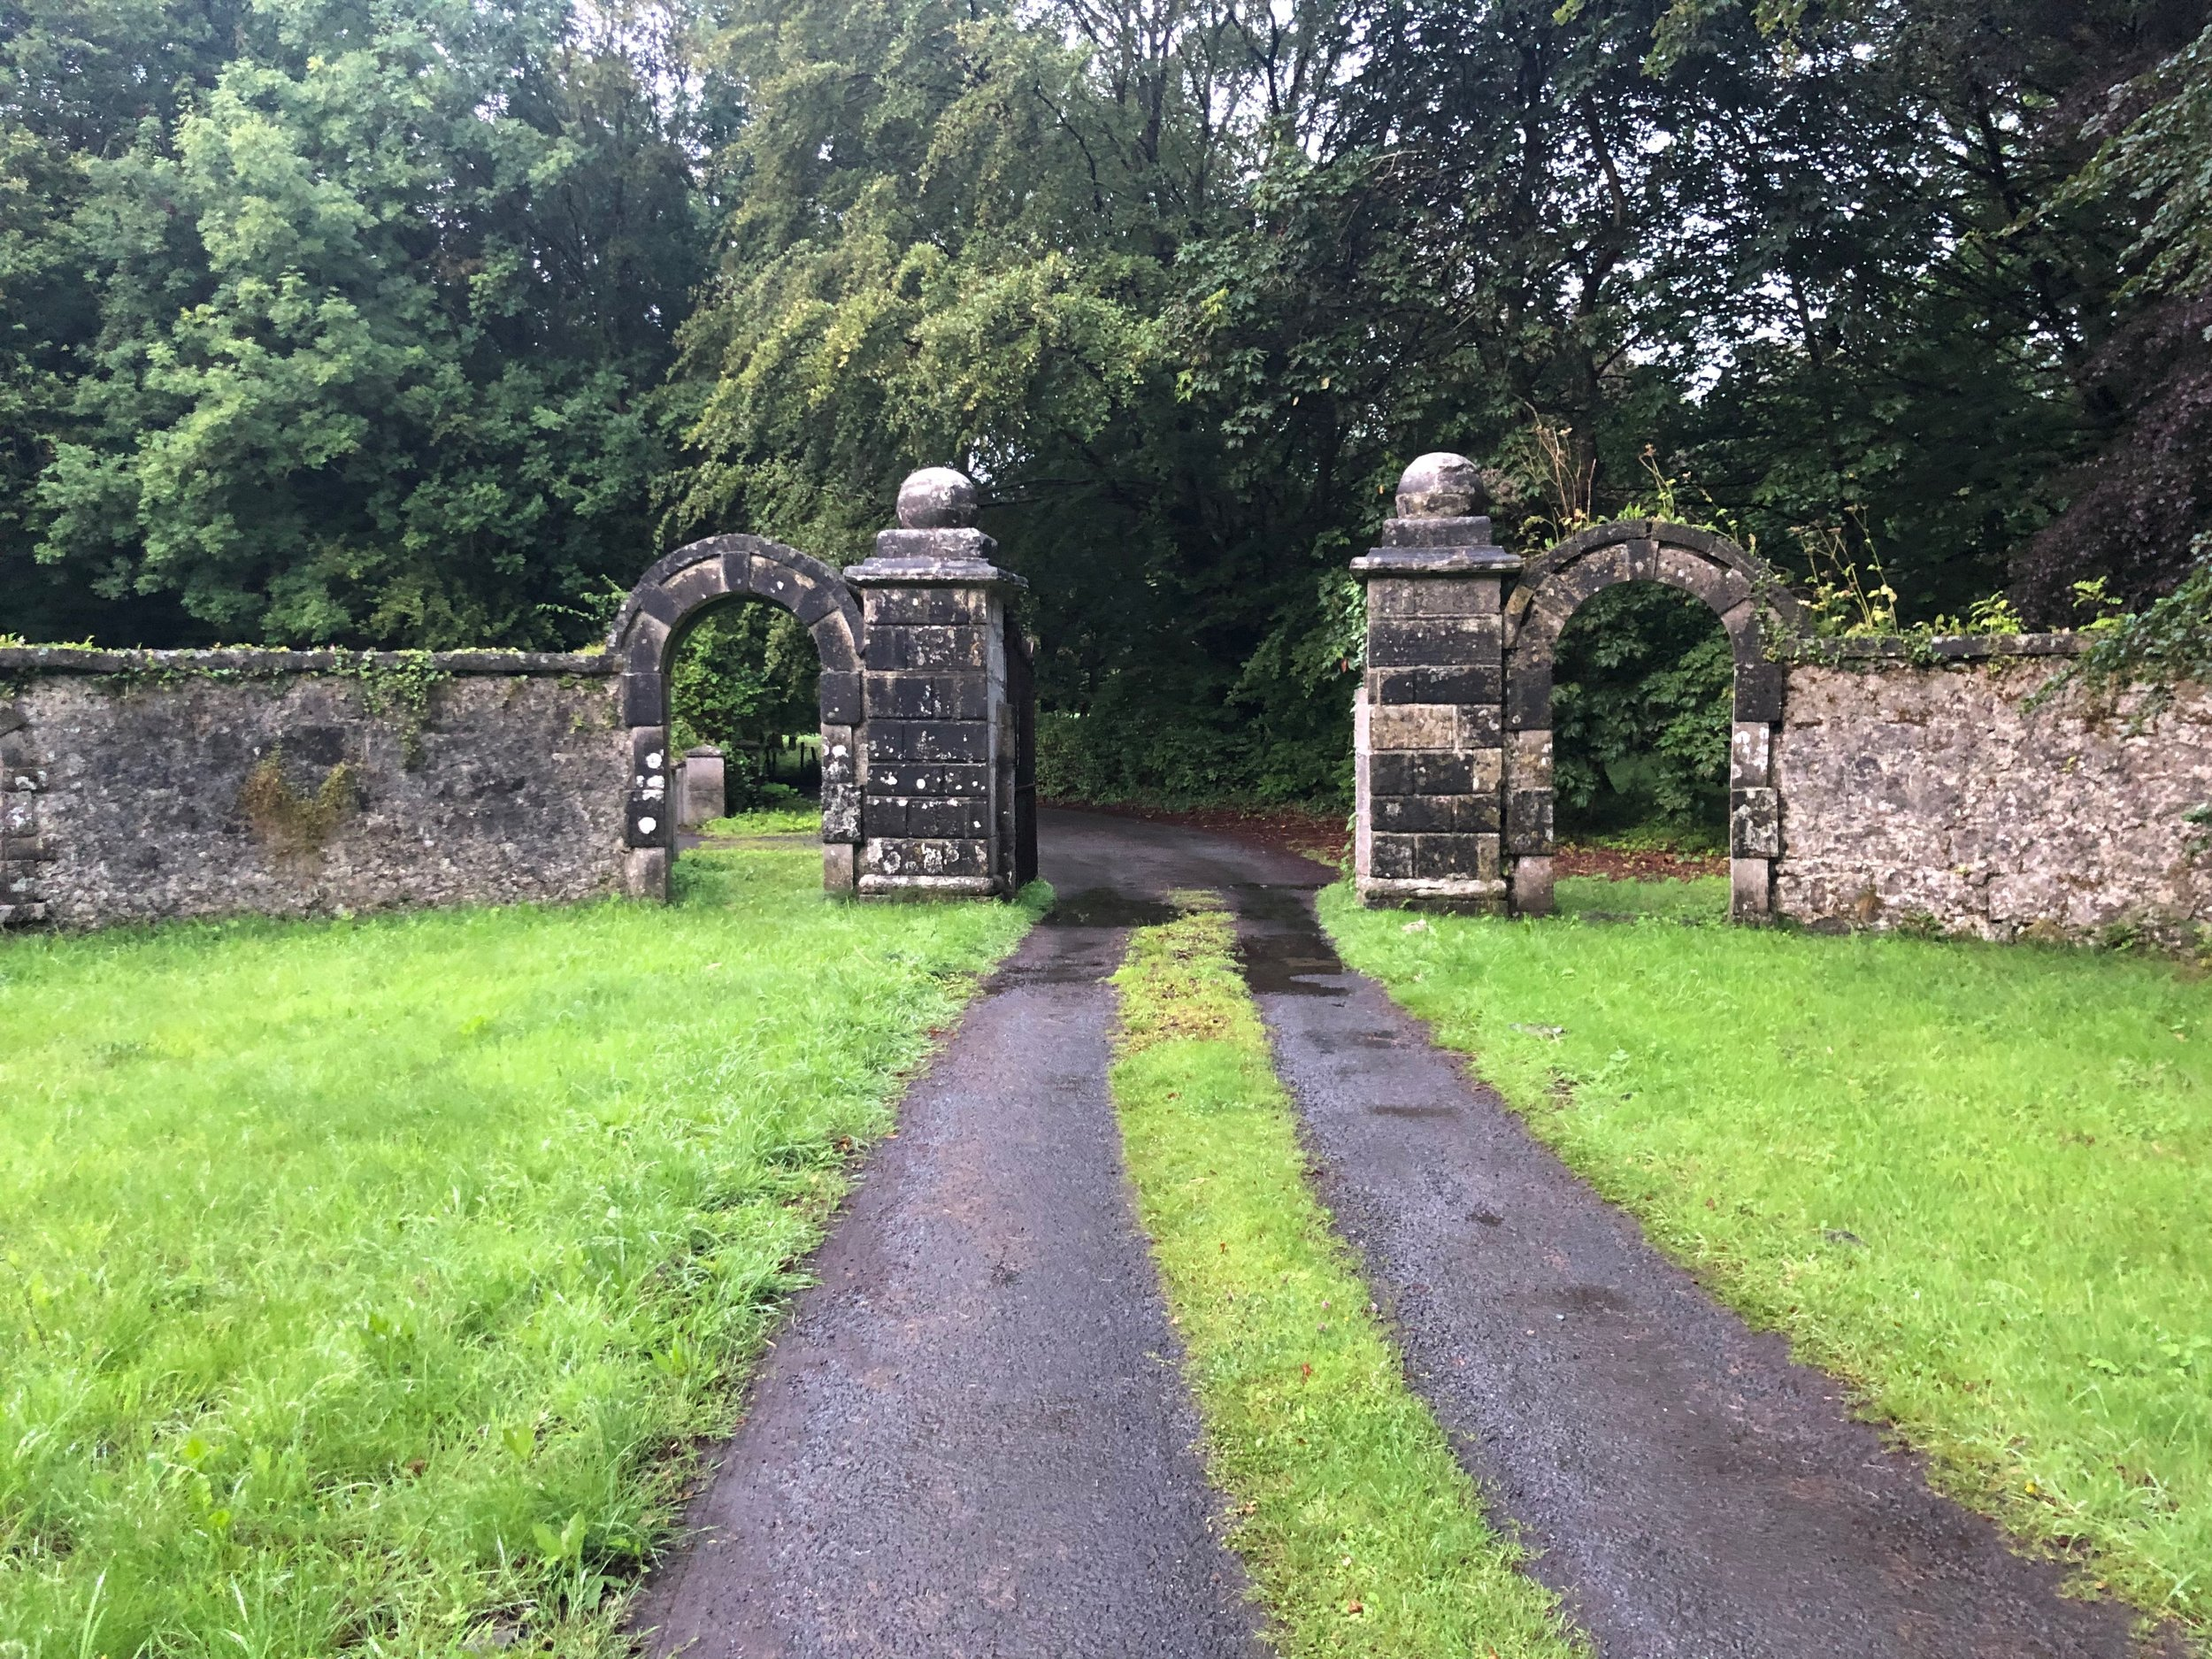 Entrance to the driveway leading to Castle Hackett.